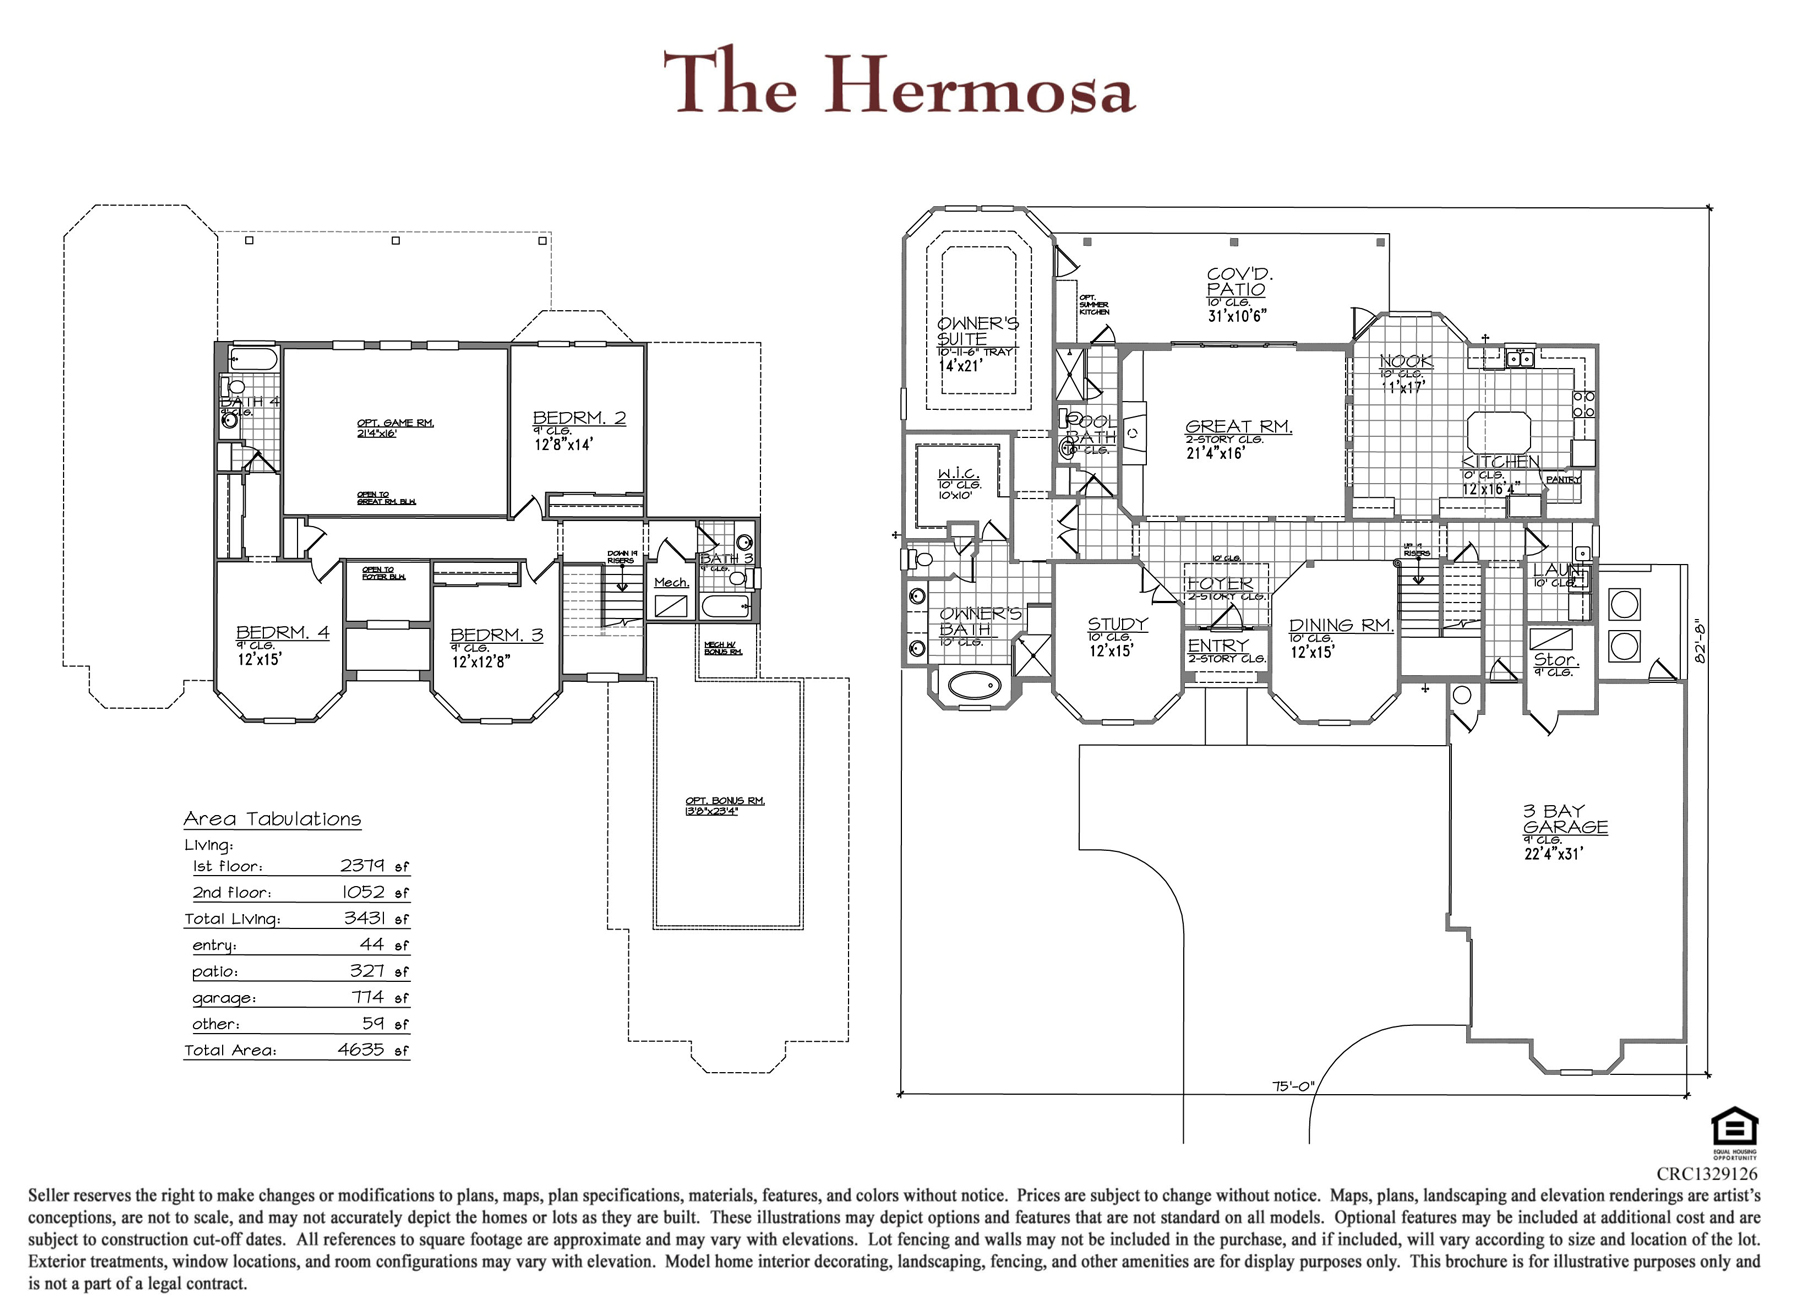 The Hermosa